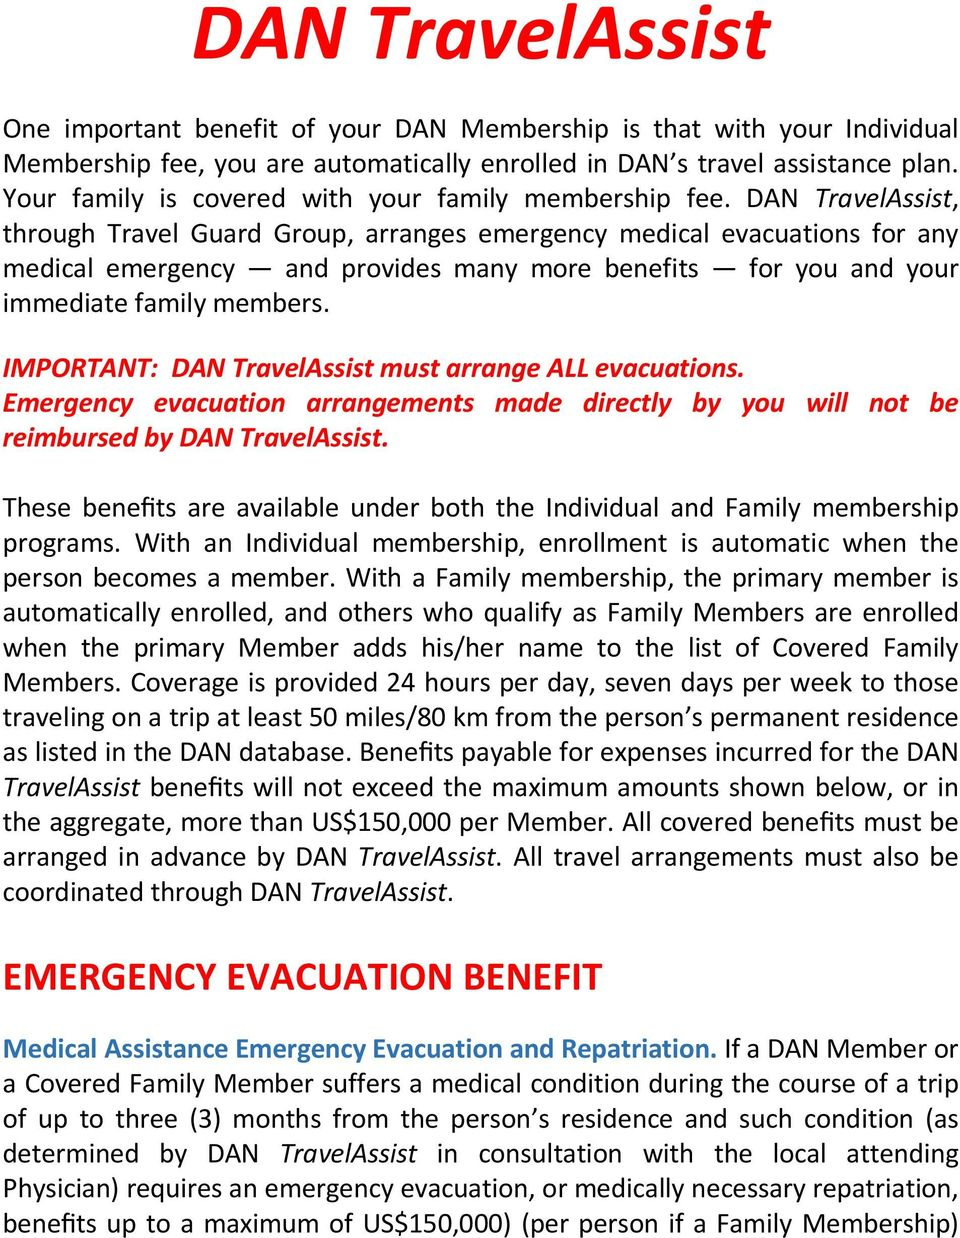 DAN TravelAssist, through Travel Guard Group, arranges emergency medical evacuations for any medical emergency and provides many more benefits for you and your immediate family members.